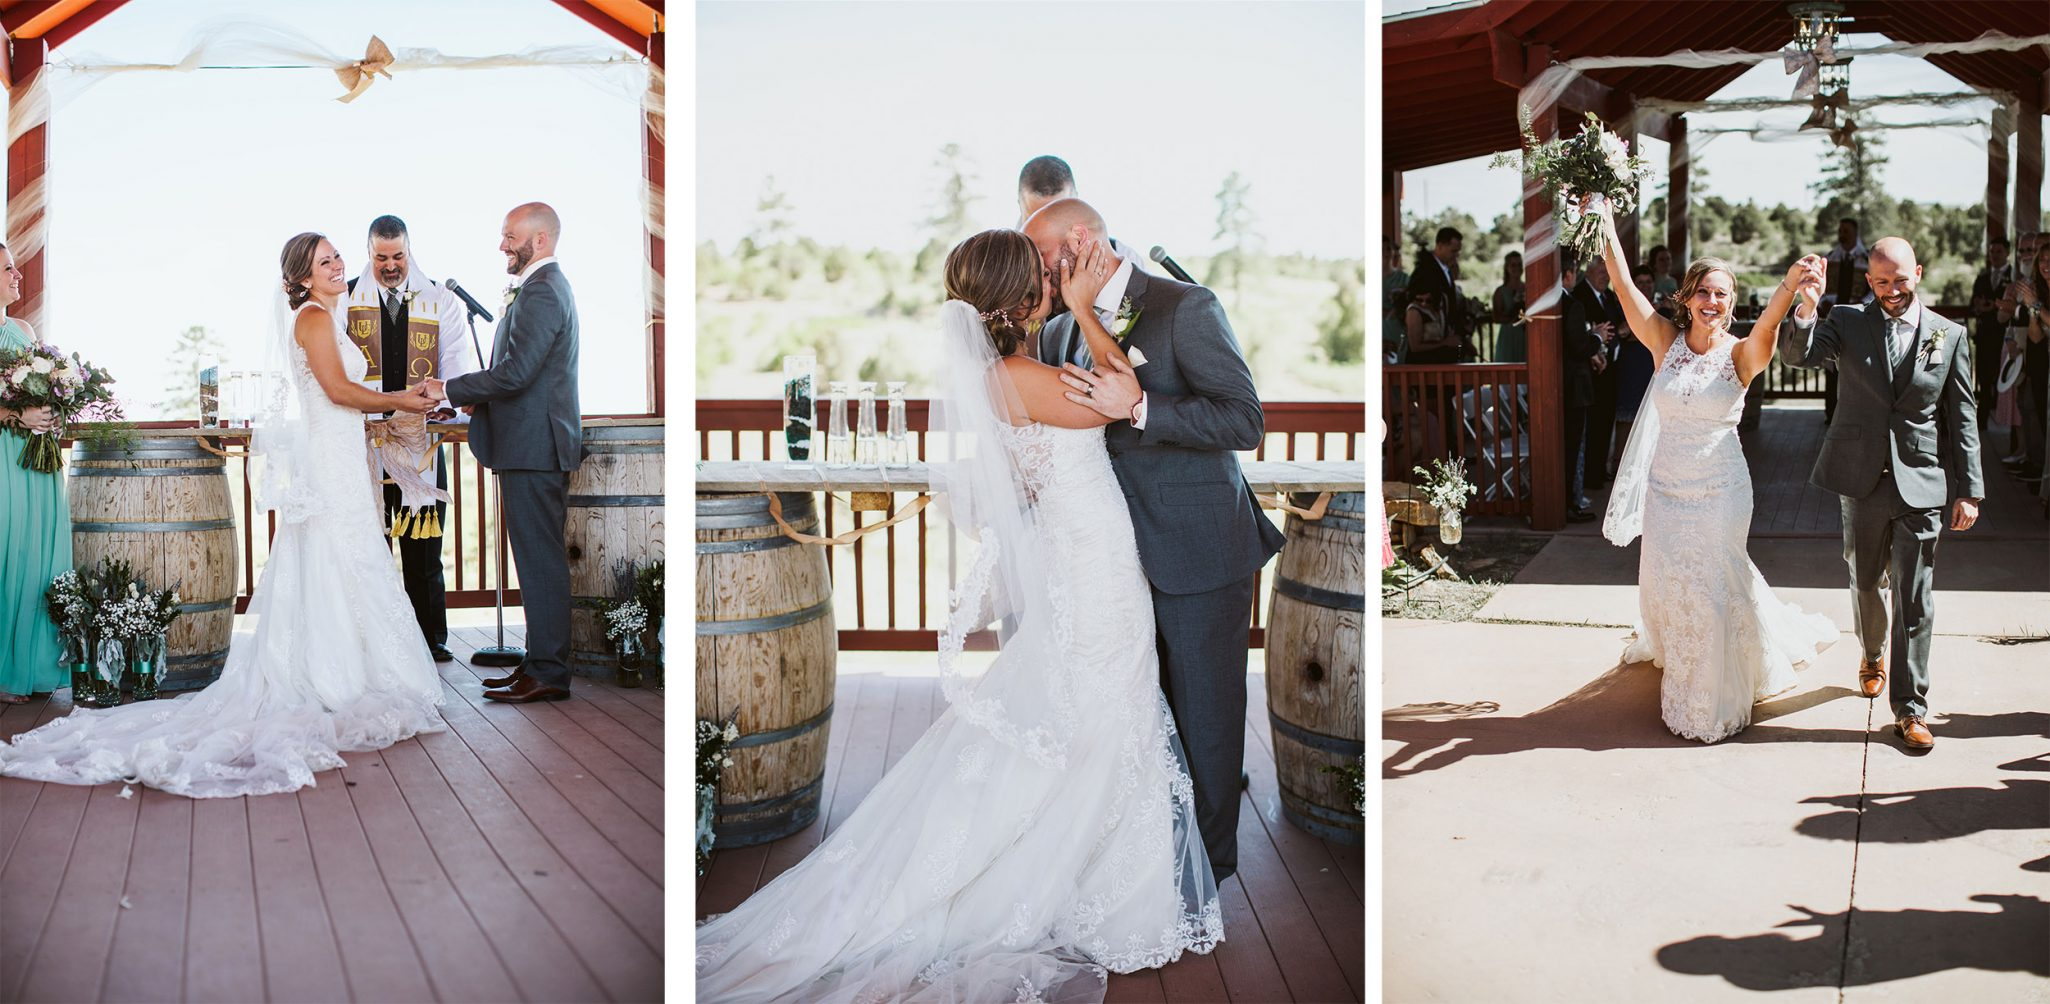 Ceremomy at Sophia Retreat Center | Durango Weddings Magazine